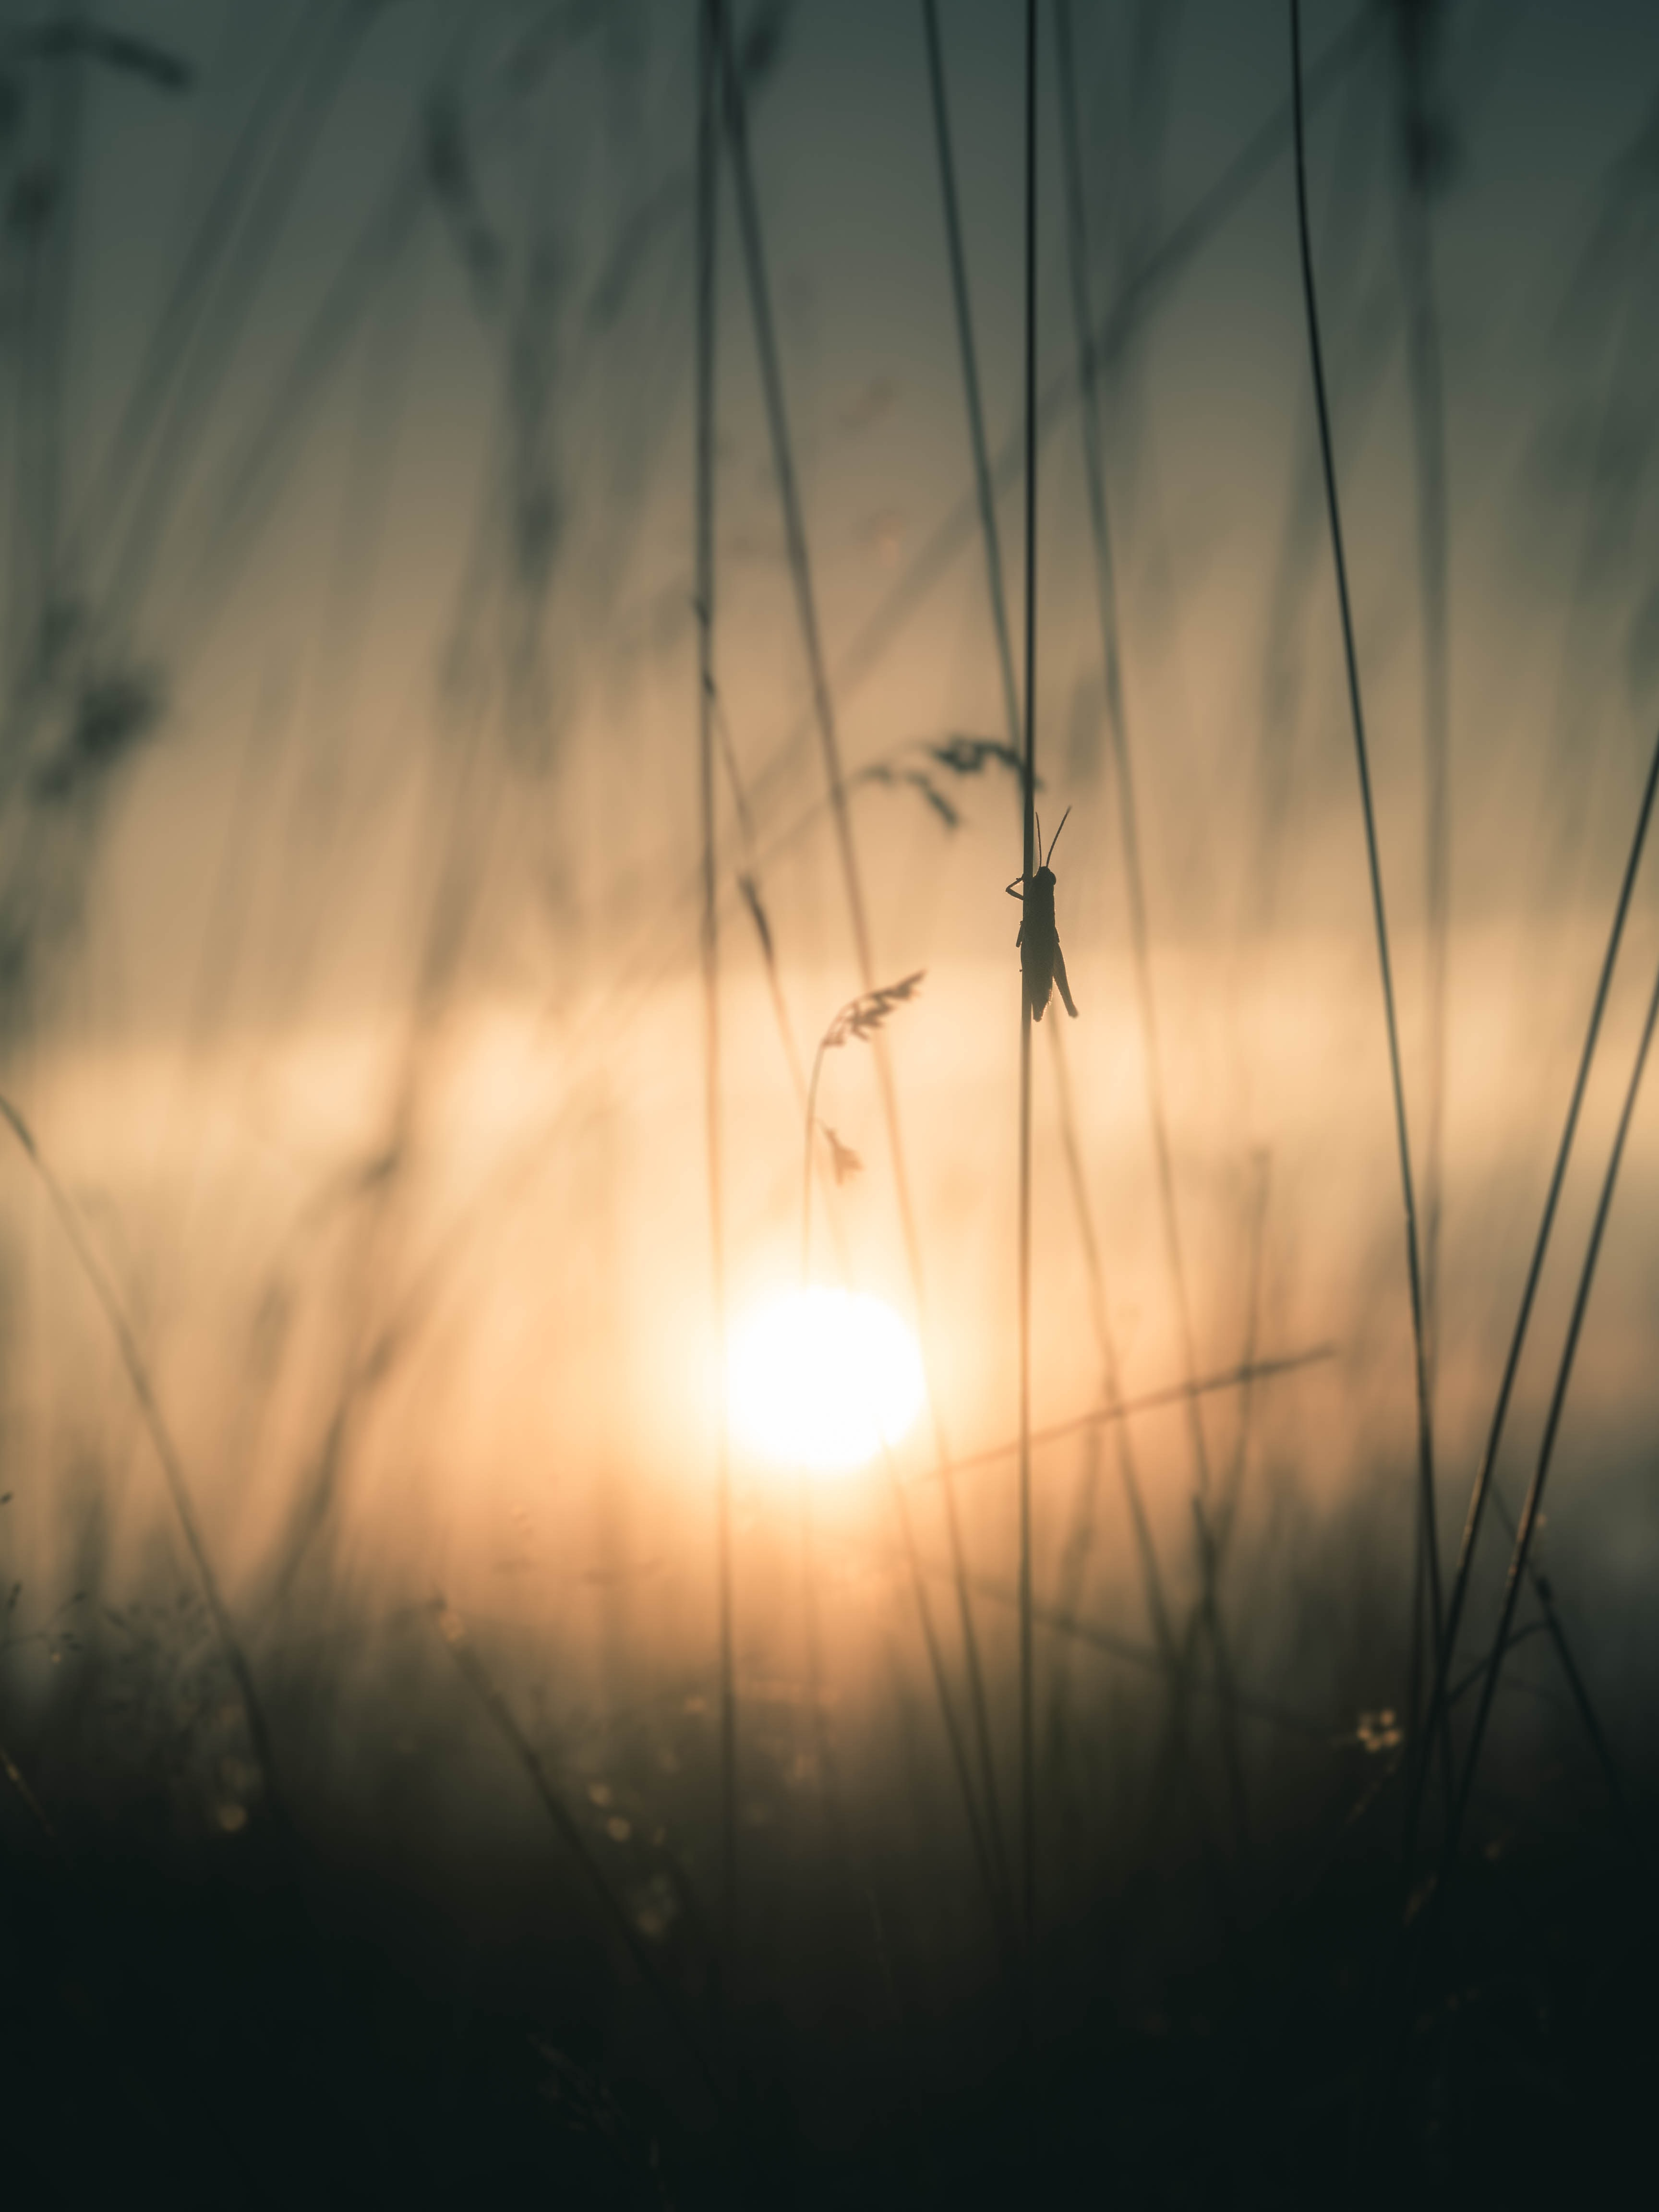 silhouette of grasshopper on grass photography during golden hour